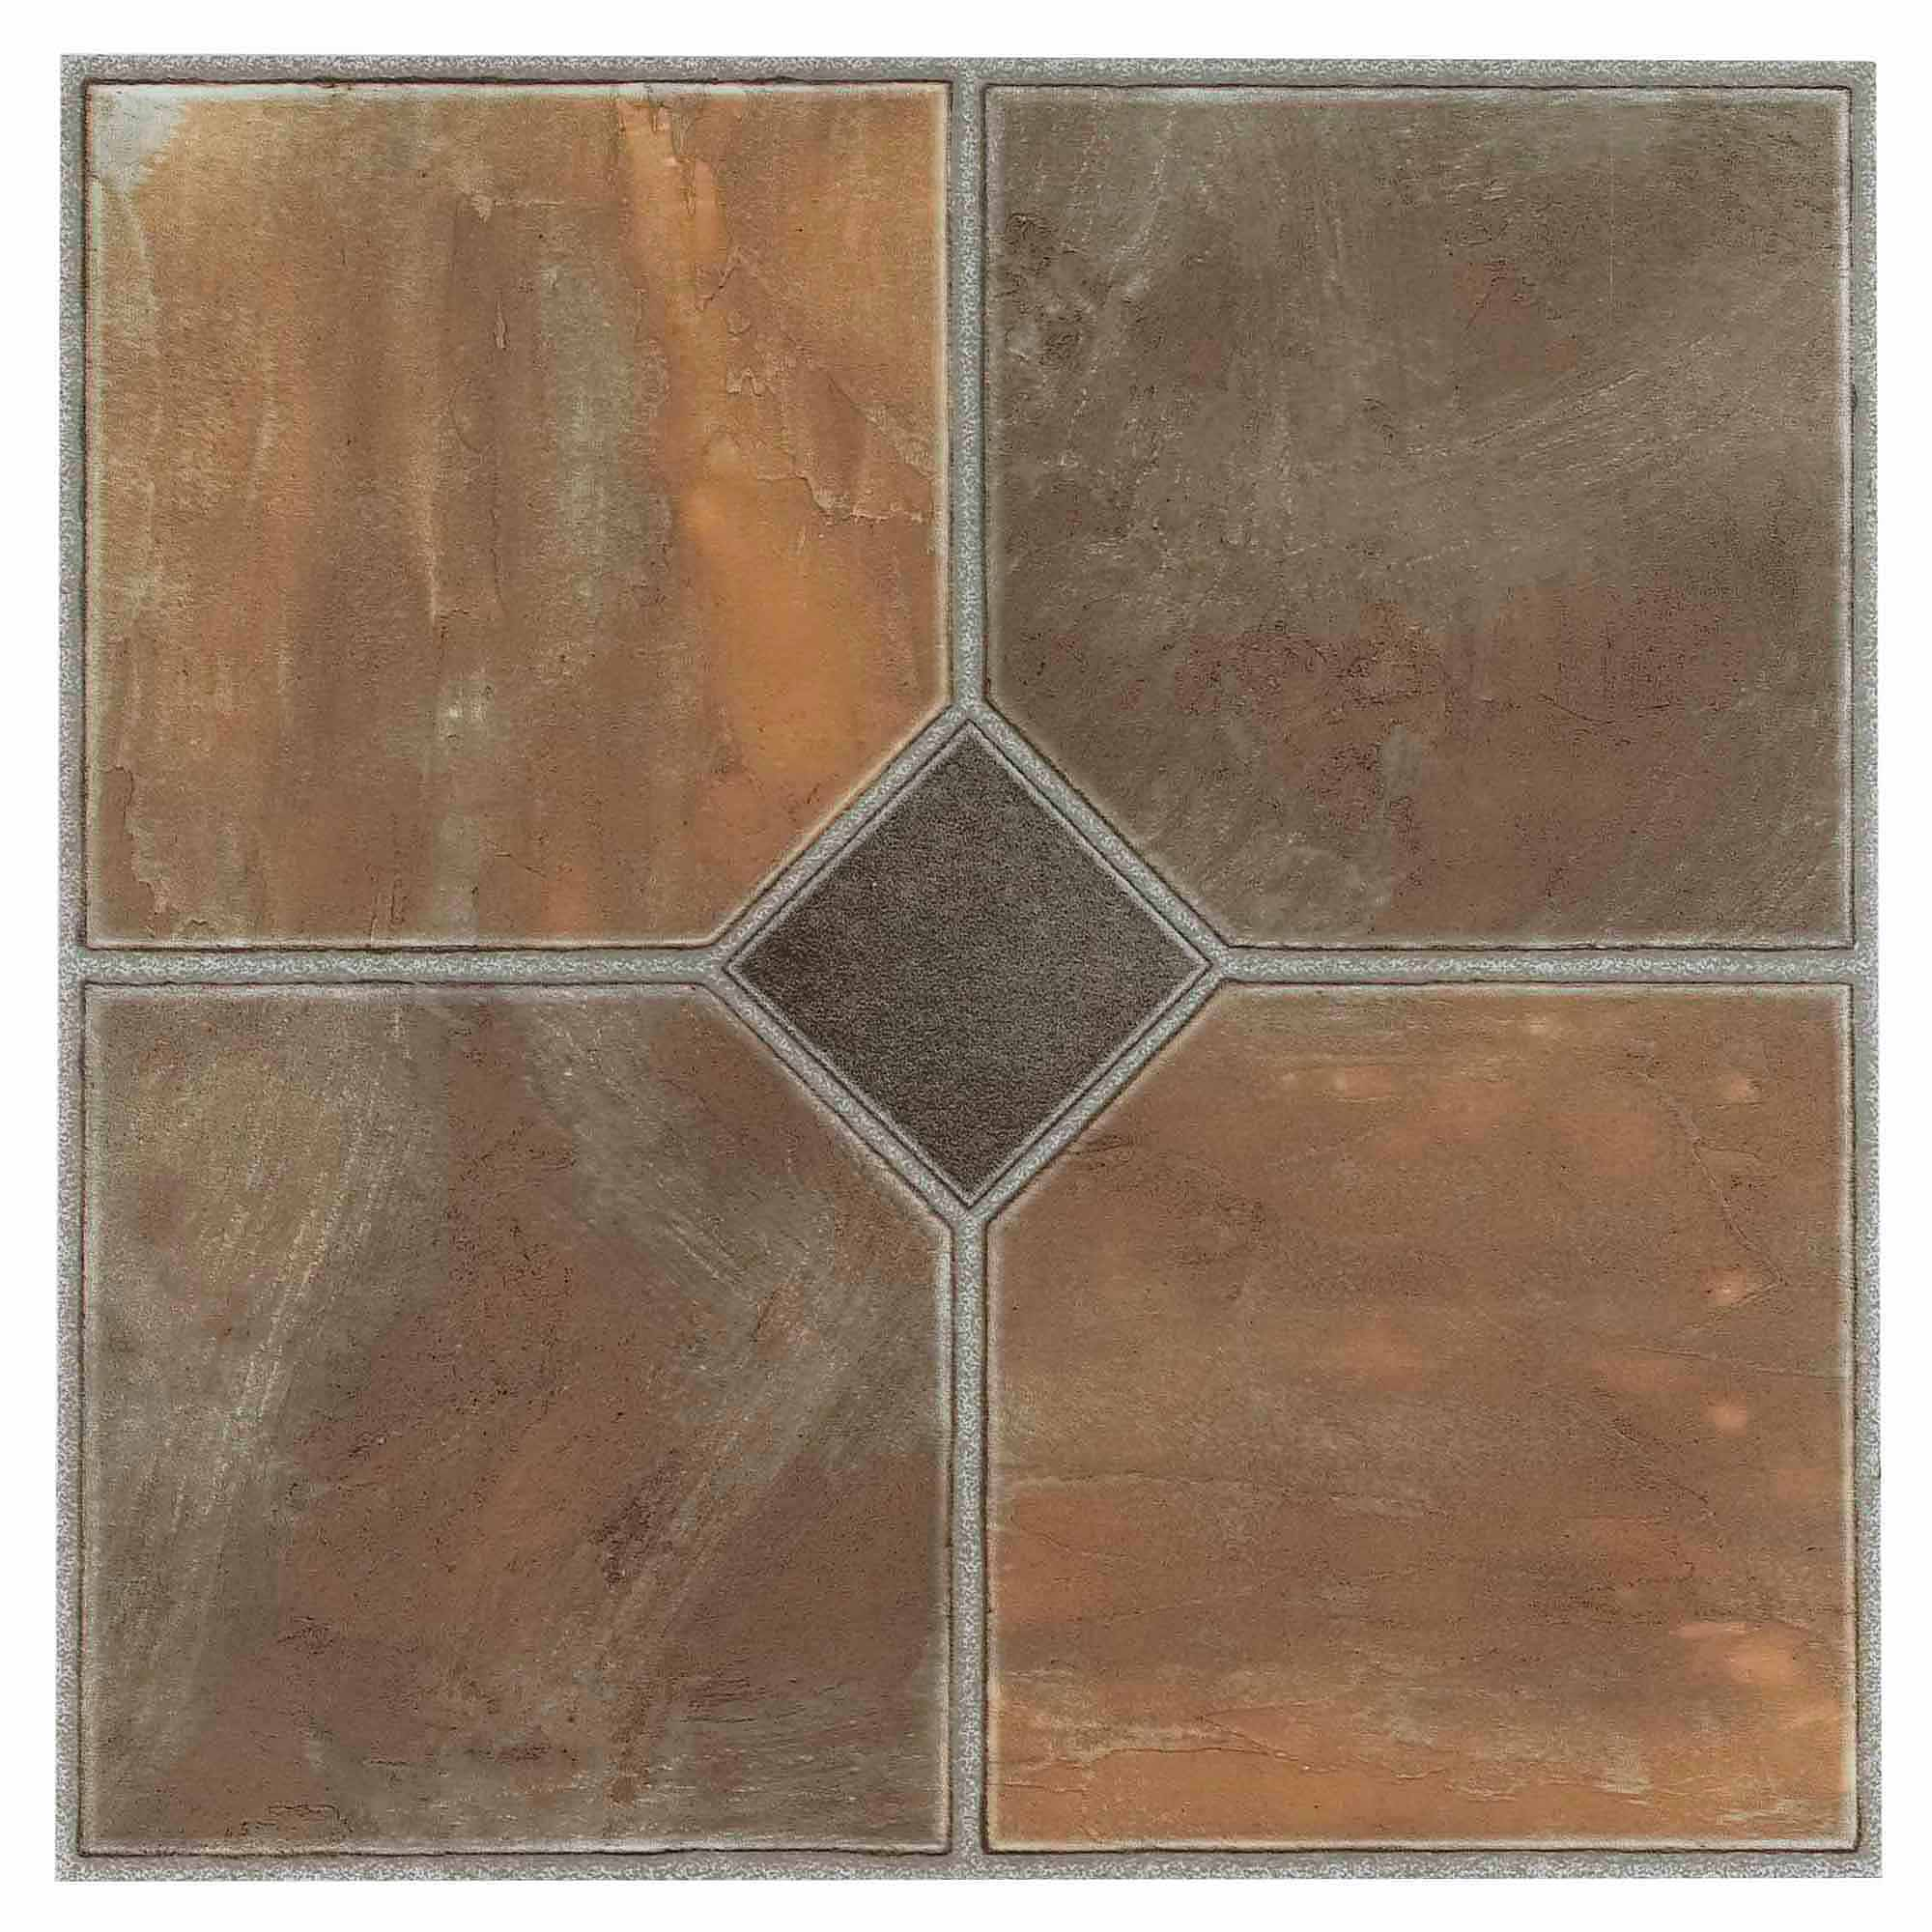 Self adhesive floor tiles nexus rustic slate 12x12 self adhesive vinyl floor tile 20 tiles20 sq dailygadgetfo Images